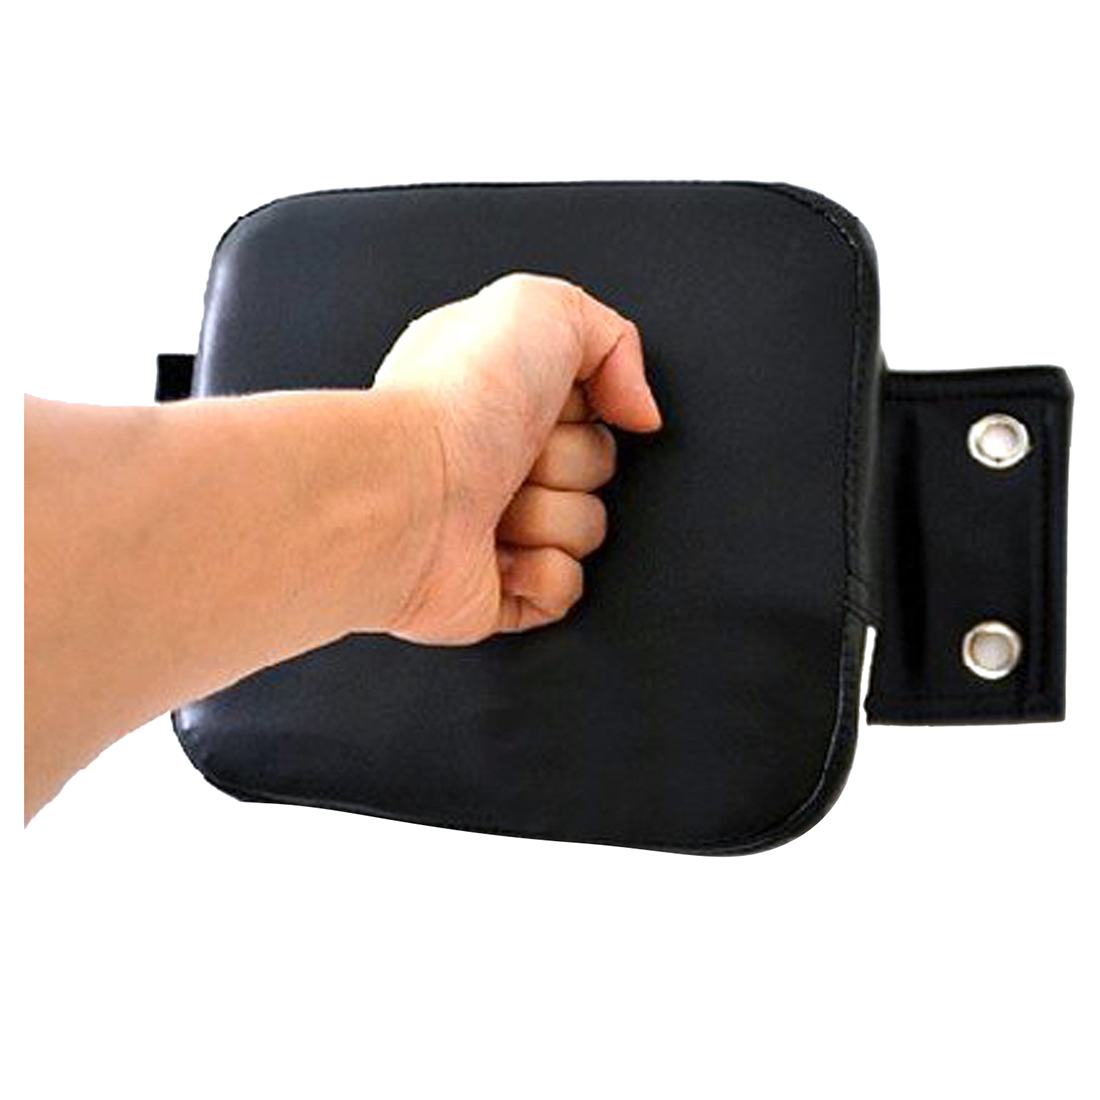 Punch Wall Focus Target Pad WING CHUN Boxing Fight Sanda Taekowndo Training Bag